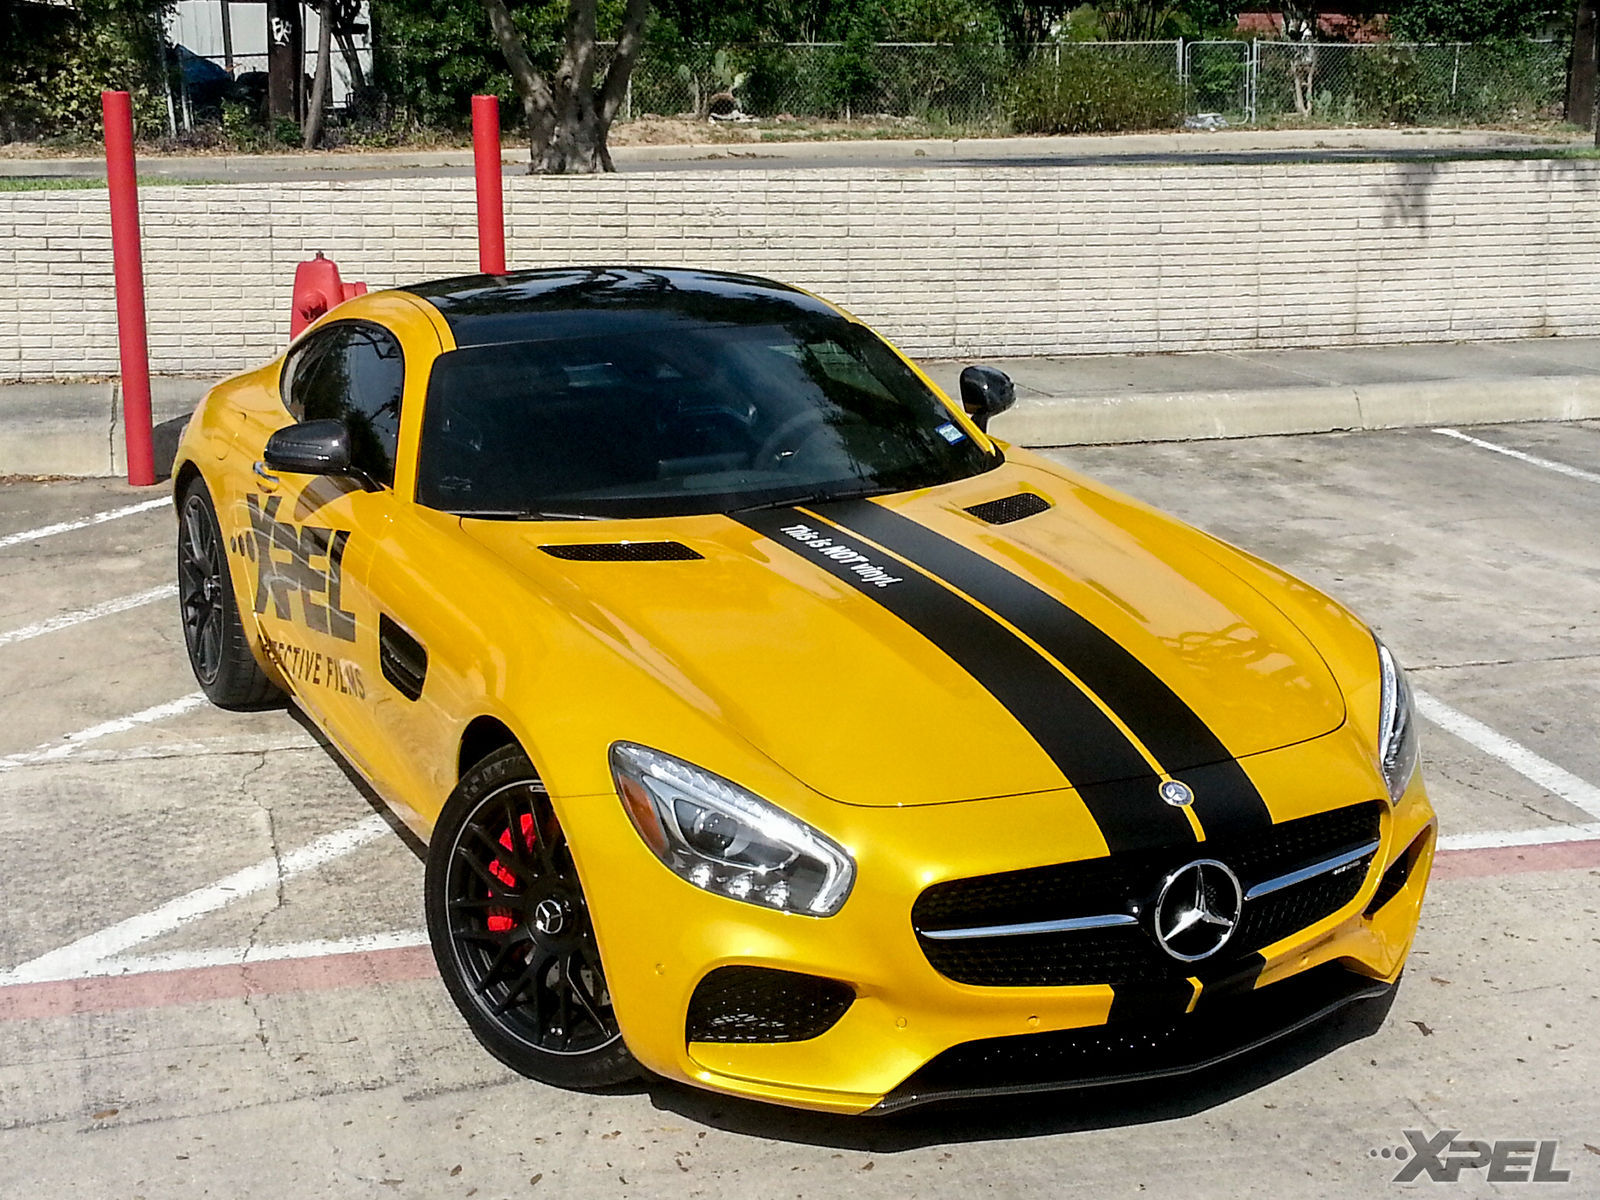 2016 Mercedes-Benz SLS AMG GT   The beautiful Mercedes AMG GT S wrapped in XPEL